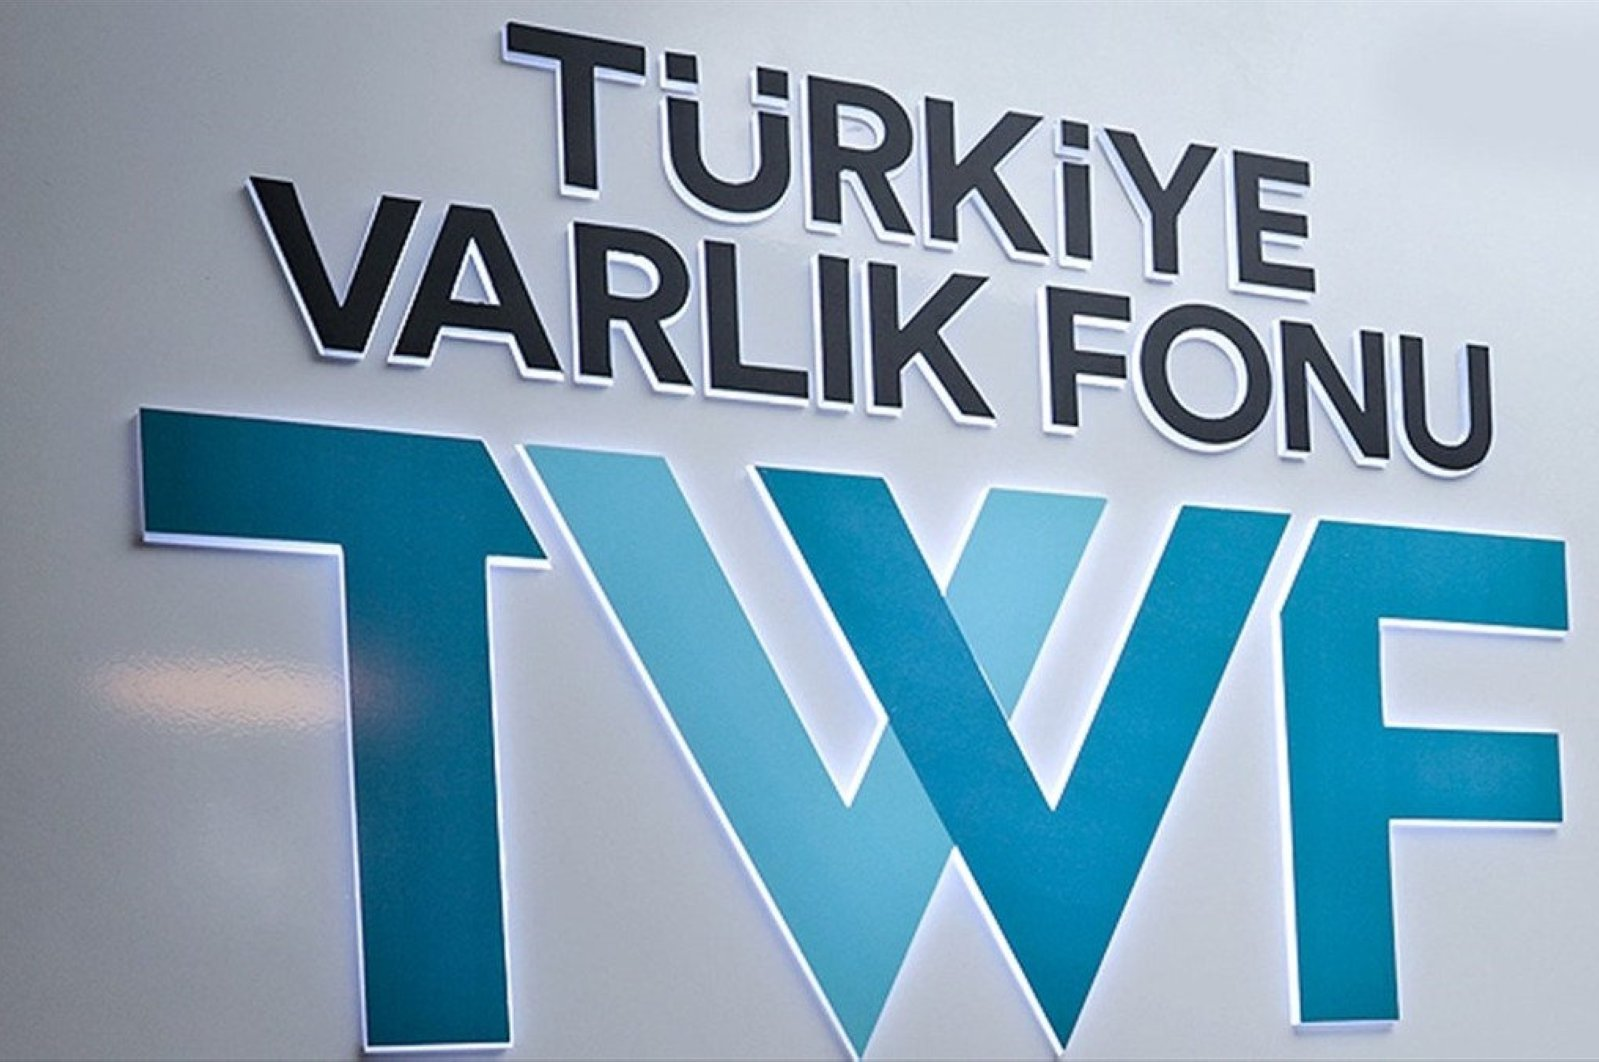 The logo of the Turkey Wealth Fund is pictured in this undated file photo.